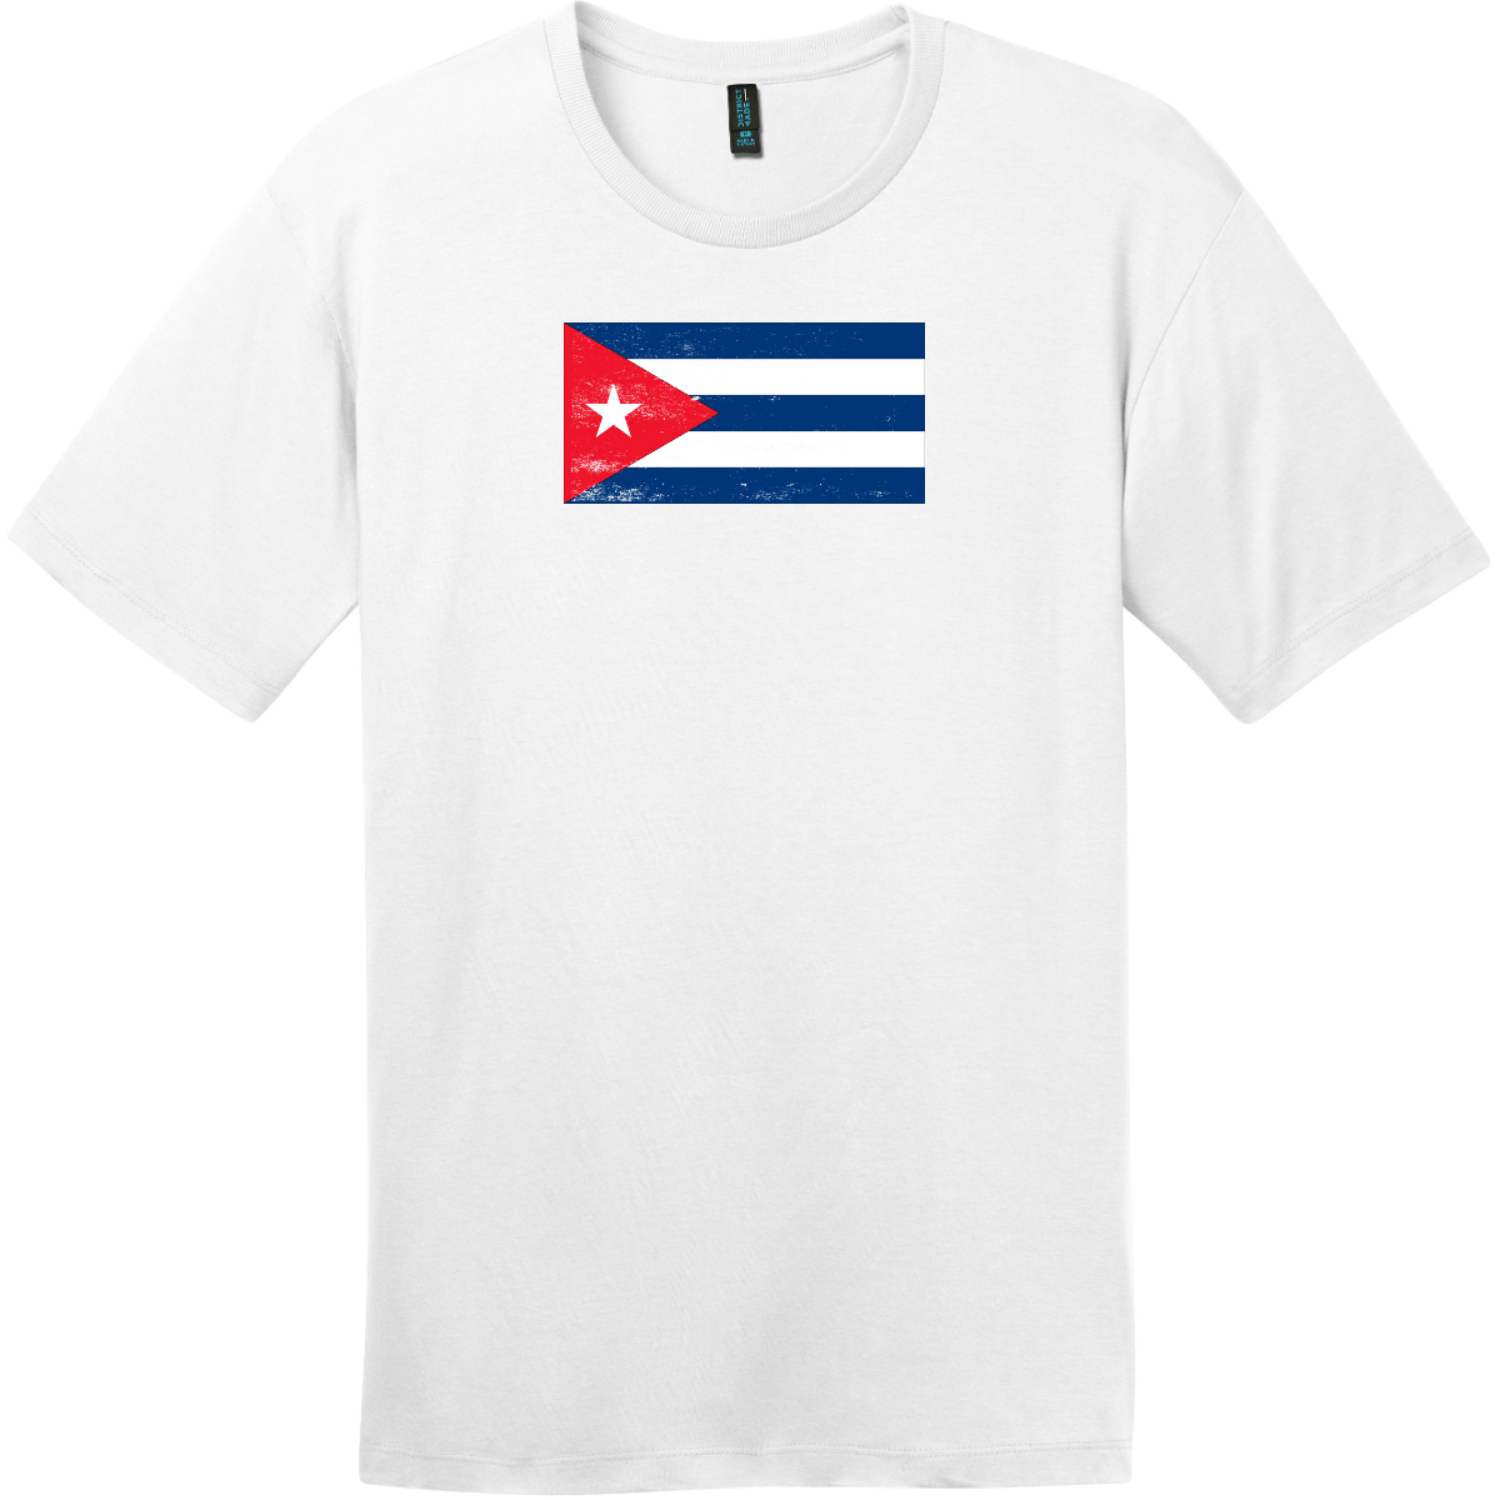 Cuba Vintage Flag T-Shirt Bright White District Perfect Weight Tee DT104